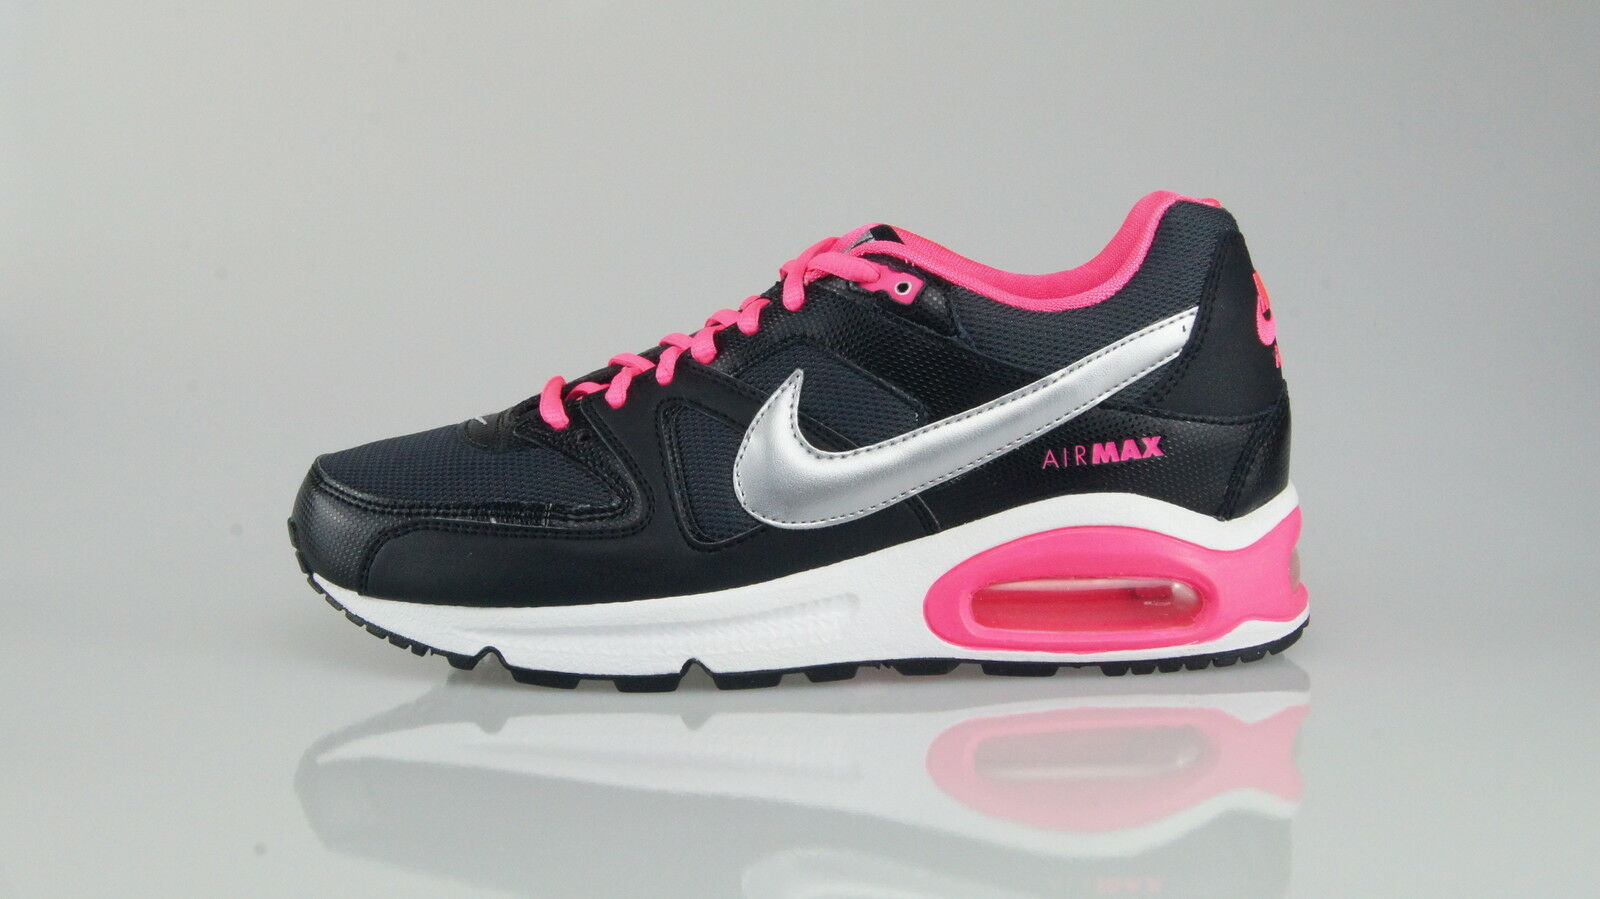 NIKE AIR MAX COMMAND Size 38,5 (6Y)